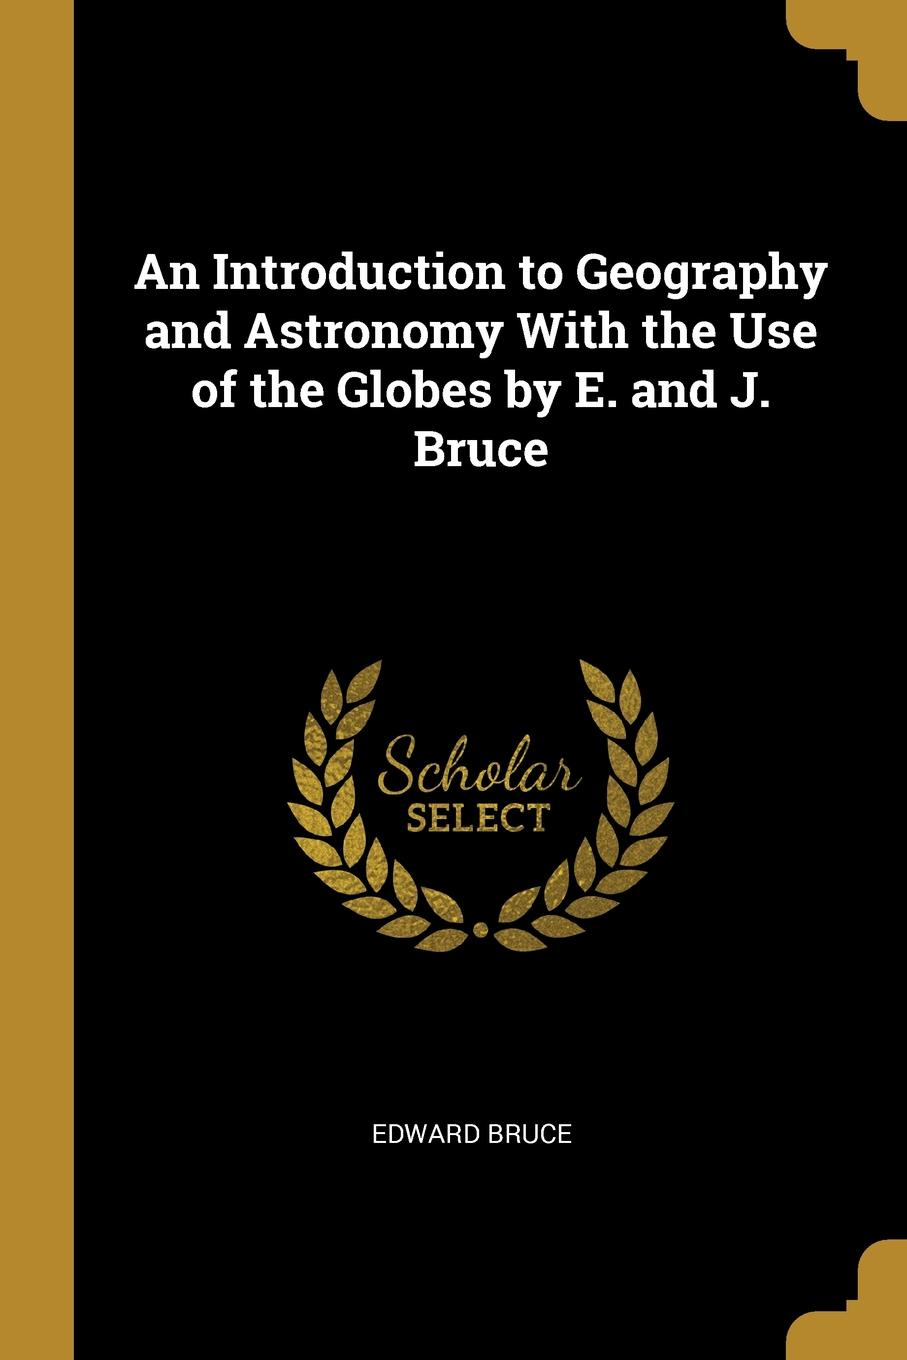 Edward Bruce. An Introduction to Geography and Astronomy With the Use of the Globes by E. and J. Bruce